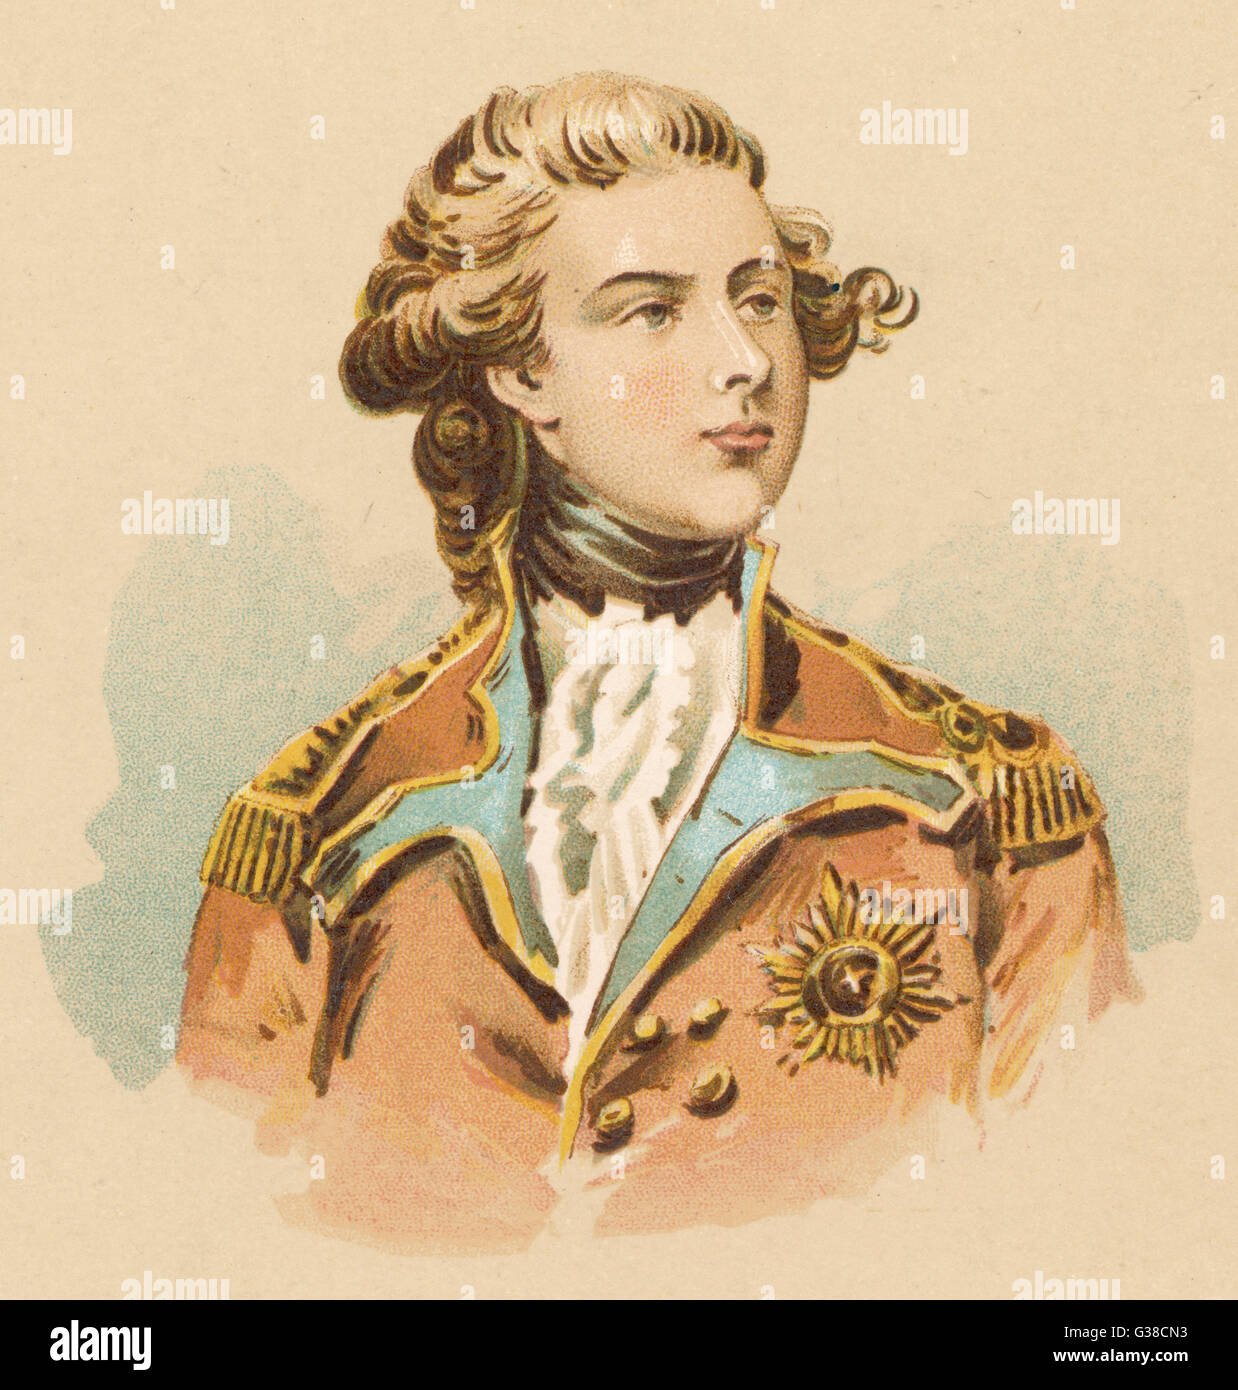 GEORGE IV OF ENGLAND -  as Prince of Wales        Date: 1762 - 1830 - Stock Image